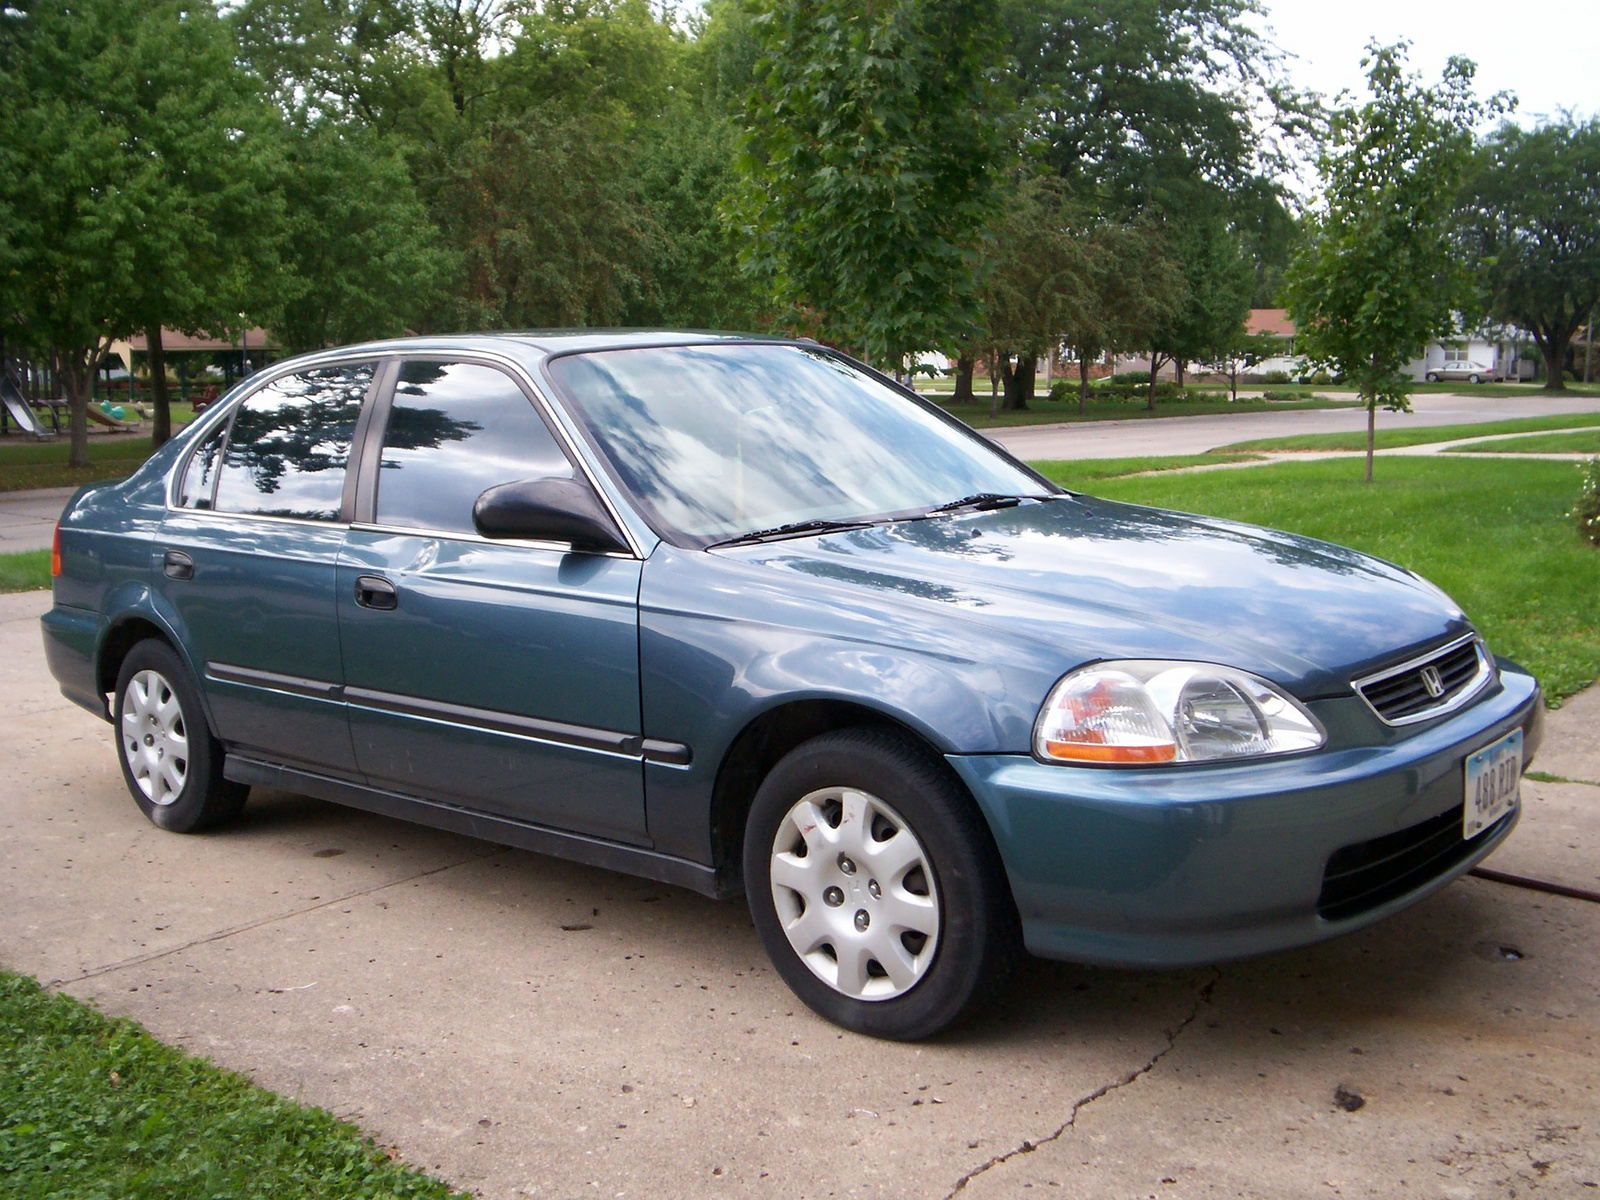 1998 Honda Civic 4 Dr LX Sedan picture